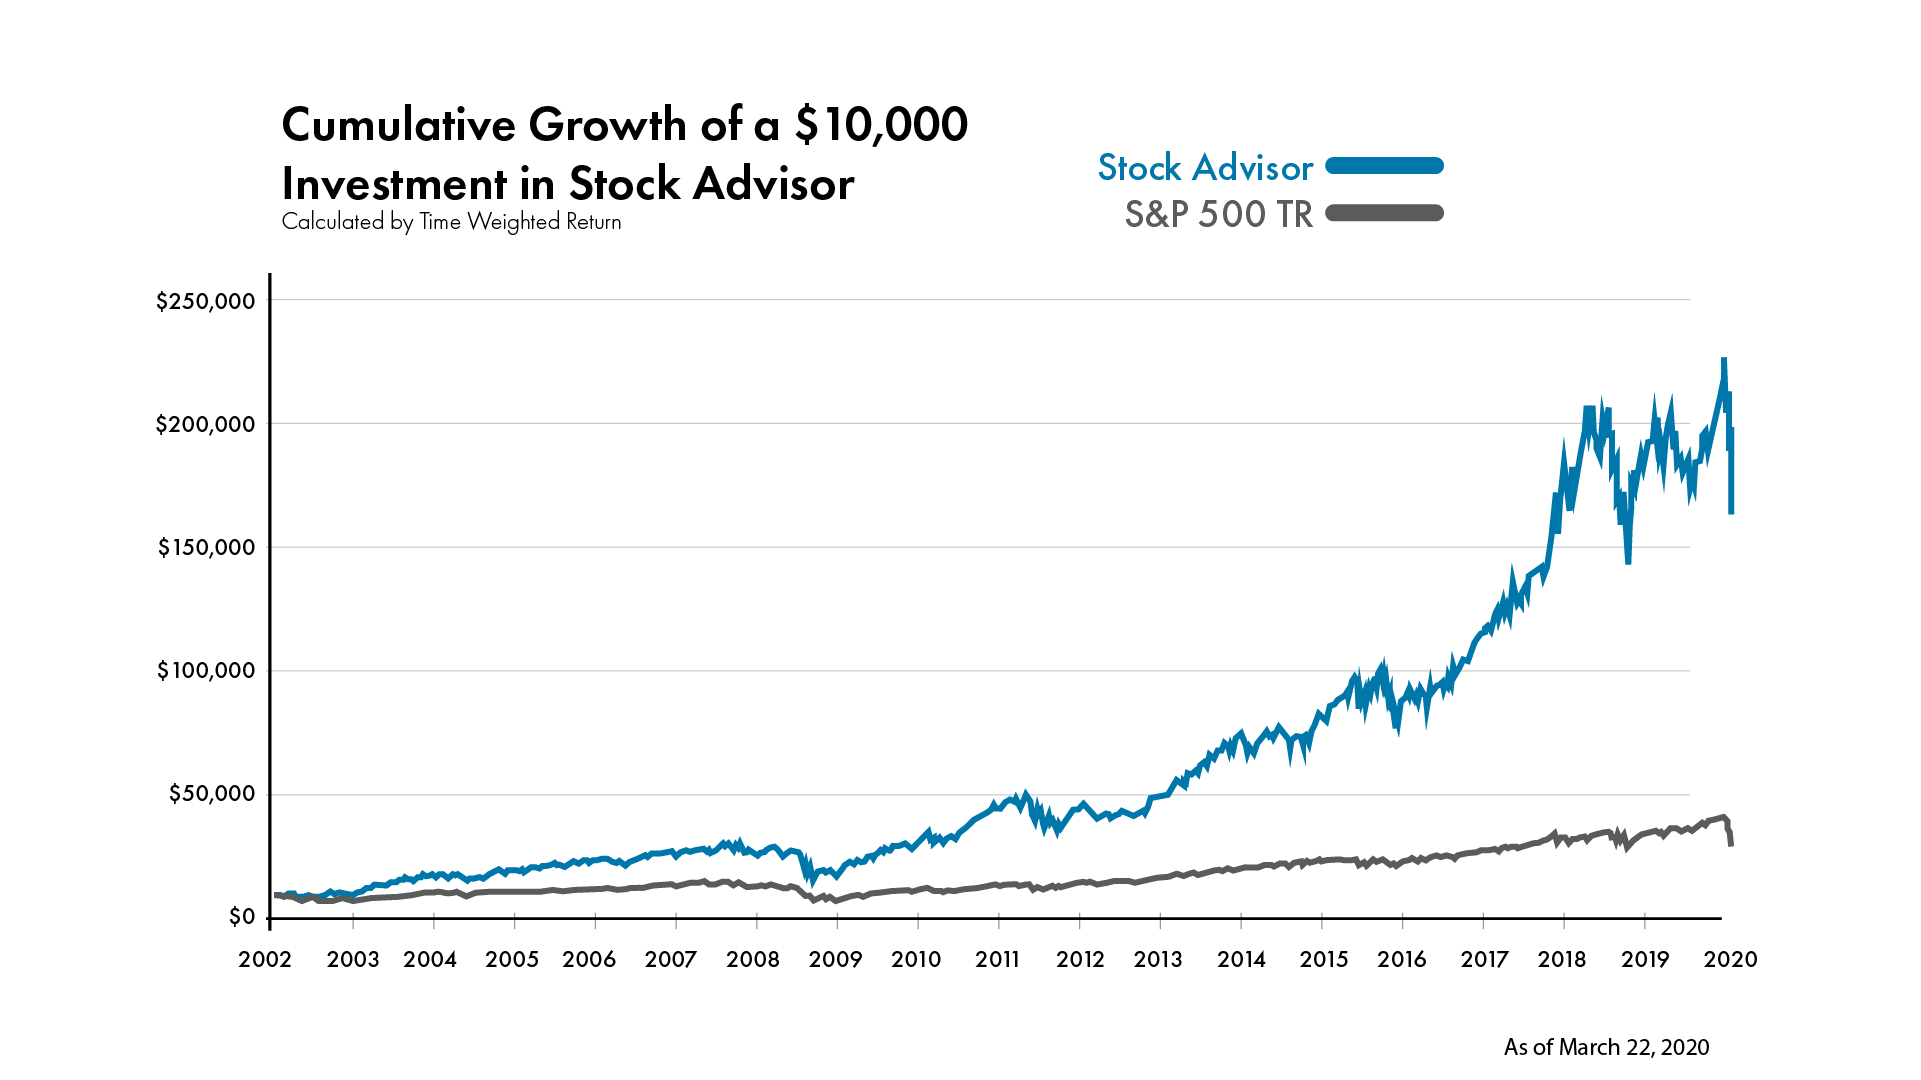 Stock Advisor has tripled the market for more than 15 years